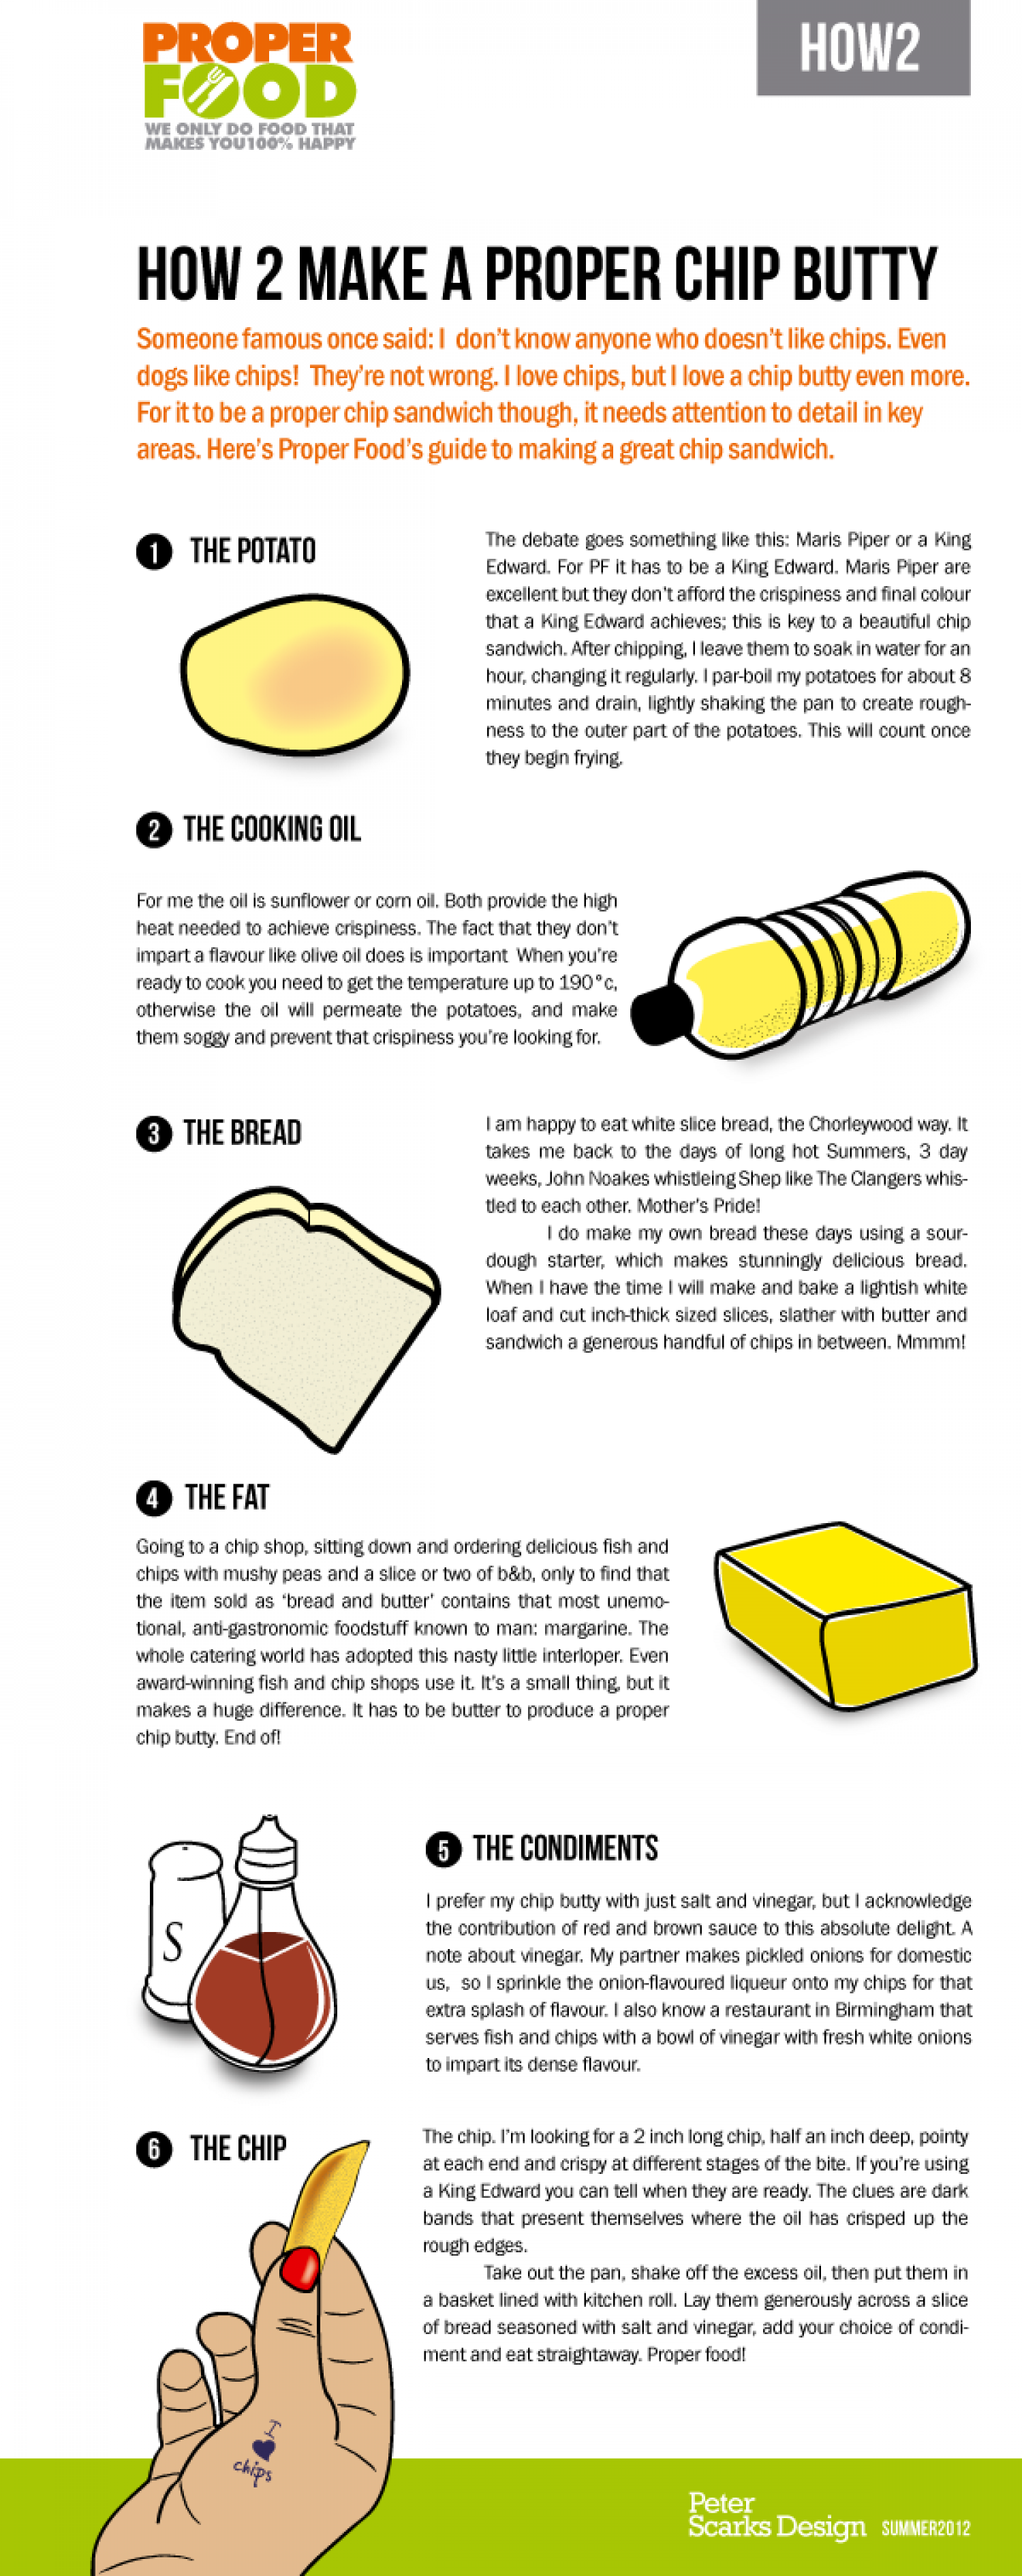 How 2 Make a Proper Chip Butty Infographic